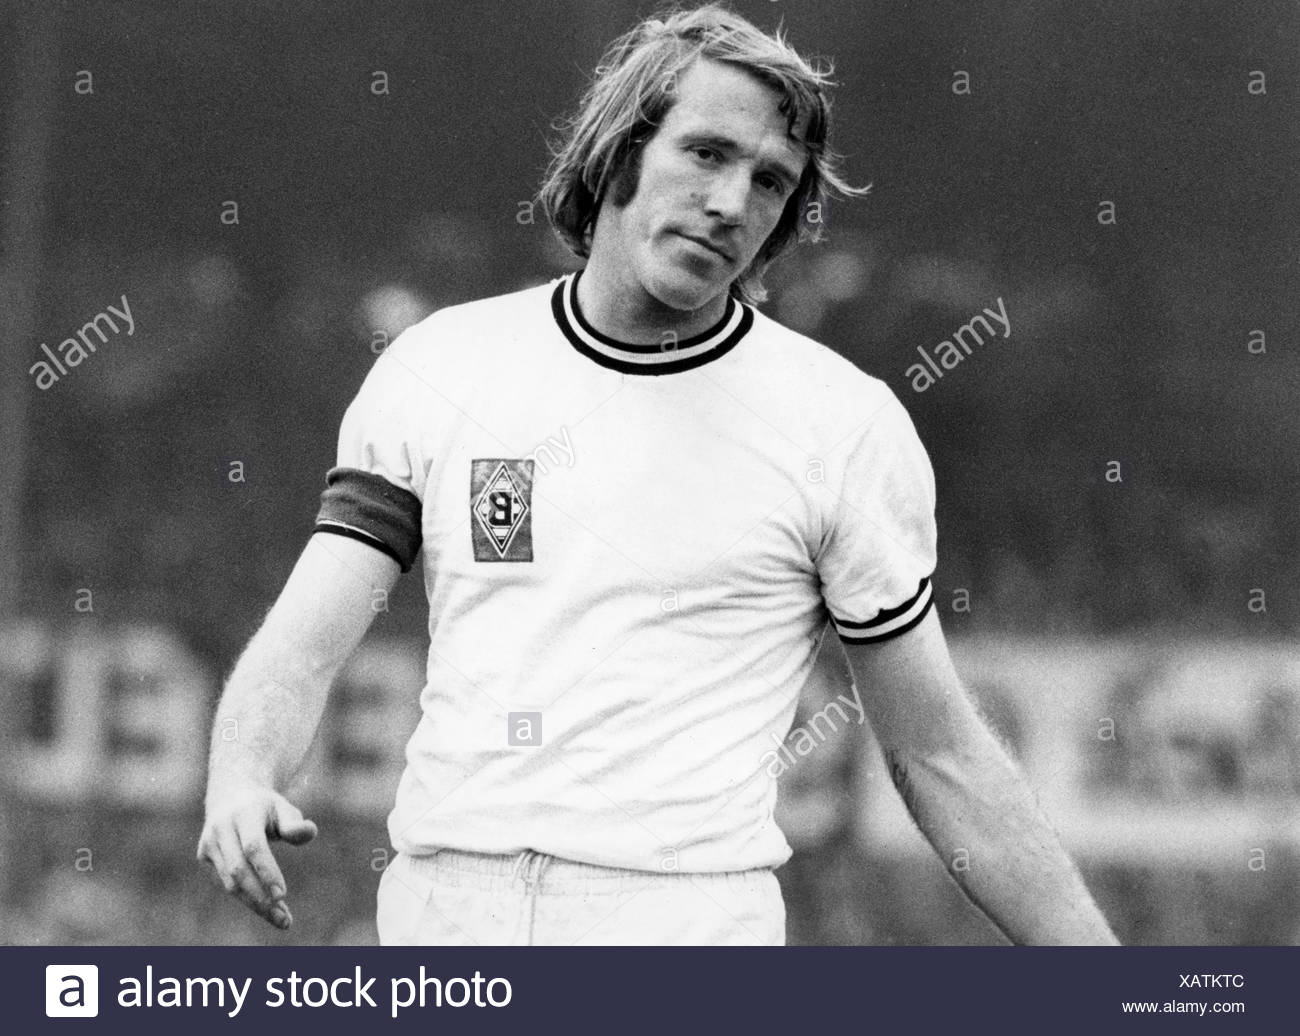 Netzer, Günter, * 14.9.1944, German athlete, (football), manager of Hamburger SV, Media businessman and TV commentator, half length, Bundesliga match, Borussia Mönchengladbach versus Rot-Weiss Essen, 29.8.1971, Additional-Rights-Clearances-NA - Stock Image